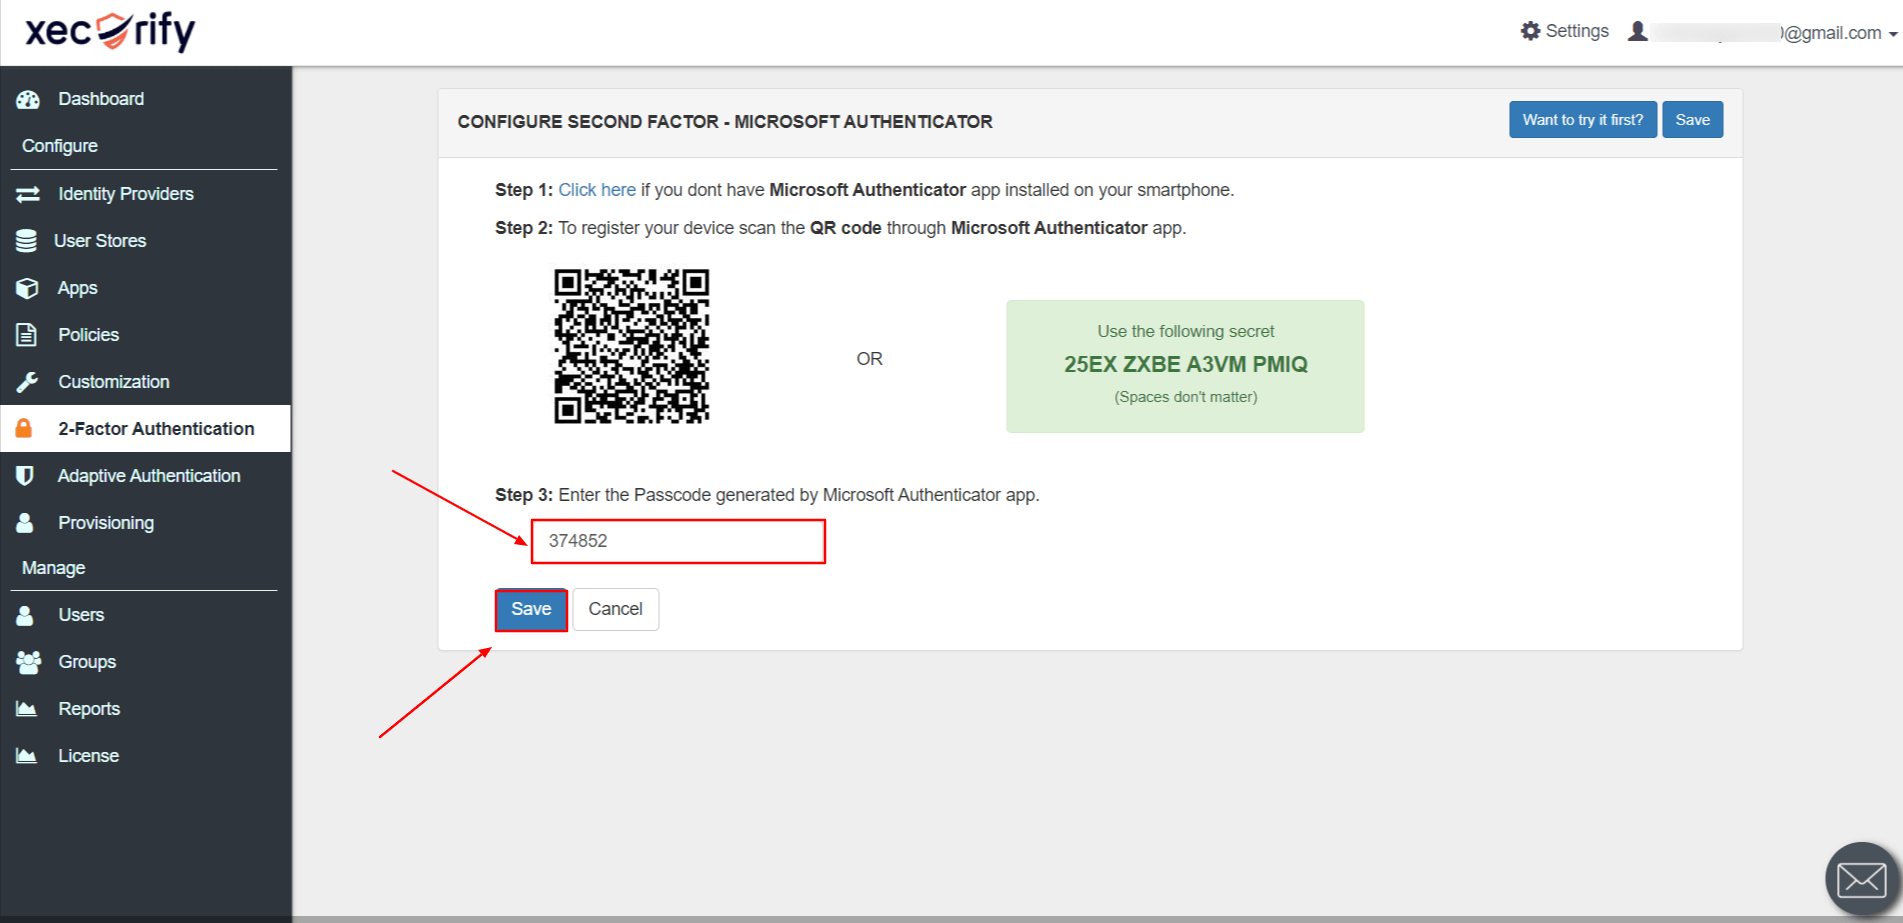 Enter passcode generated by Microsoft Authenticator App